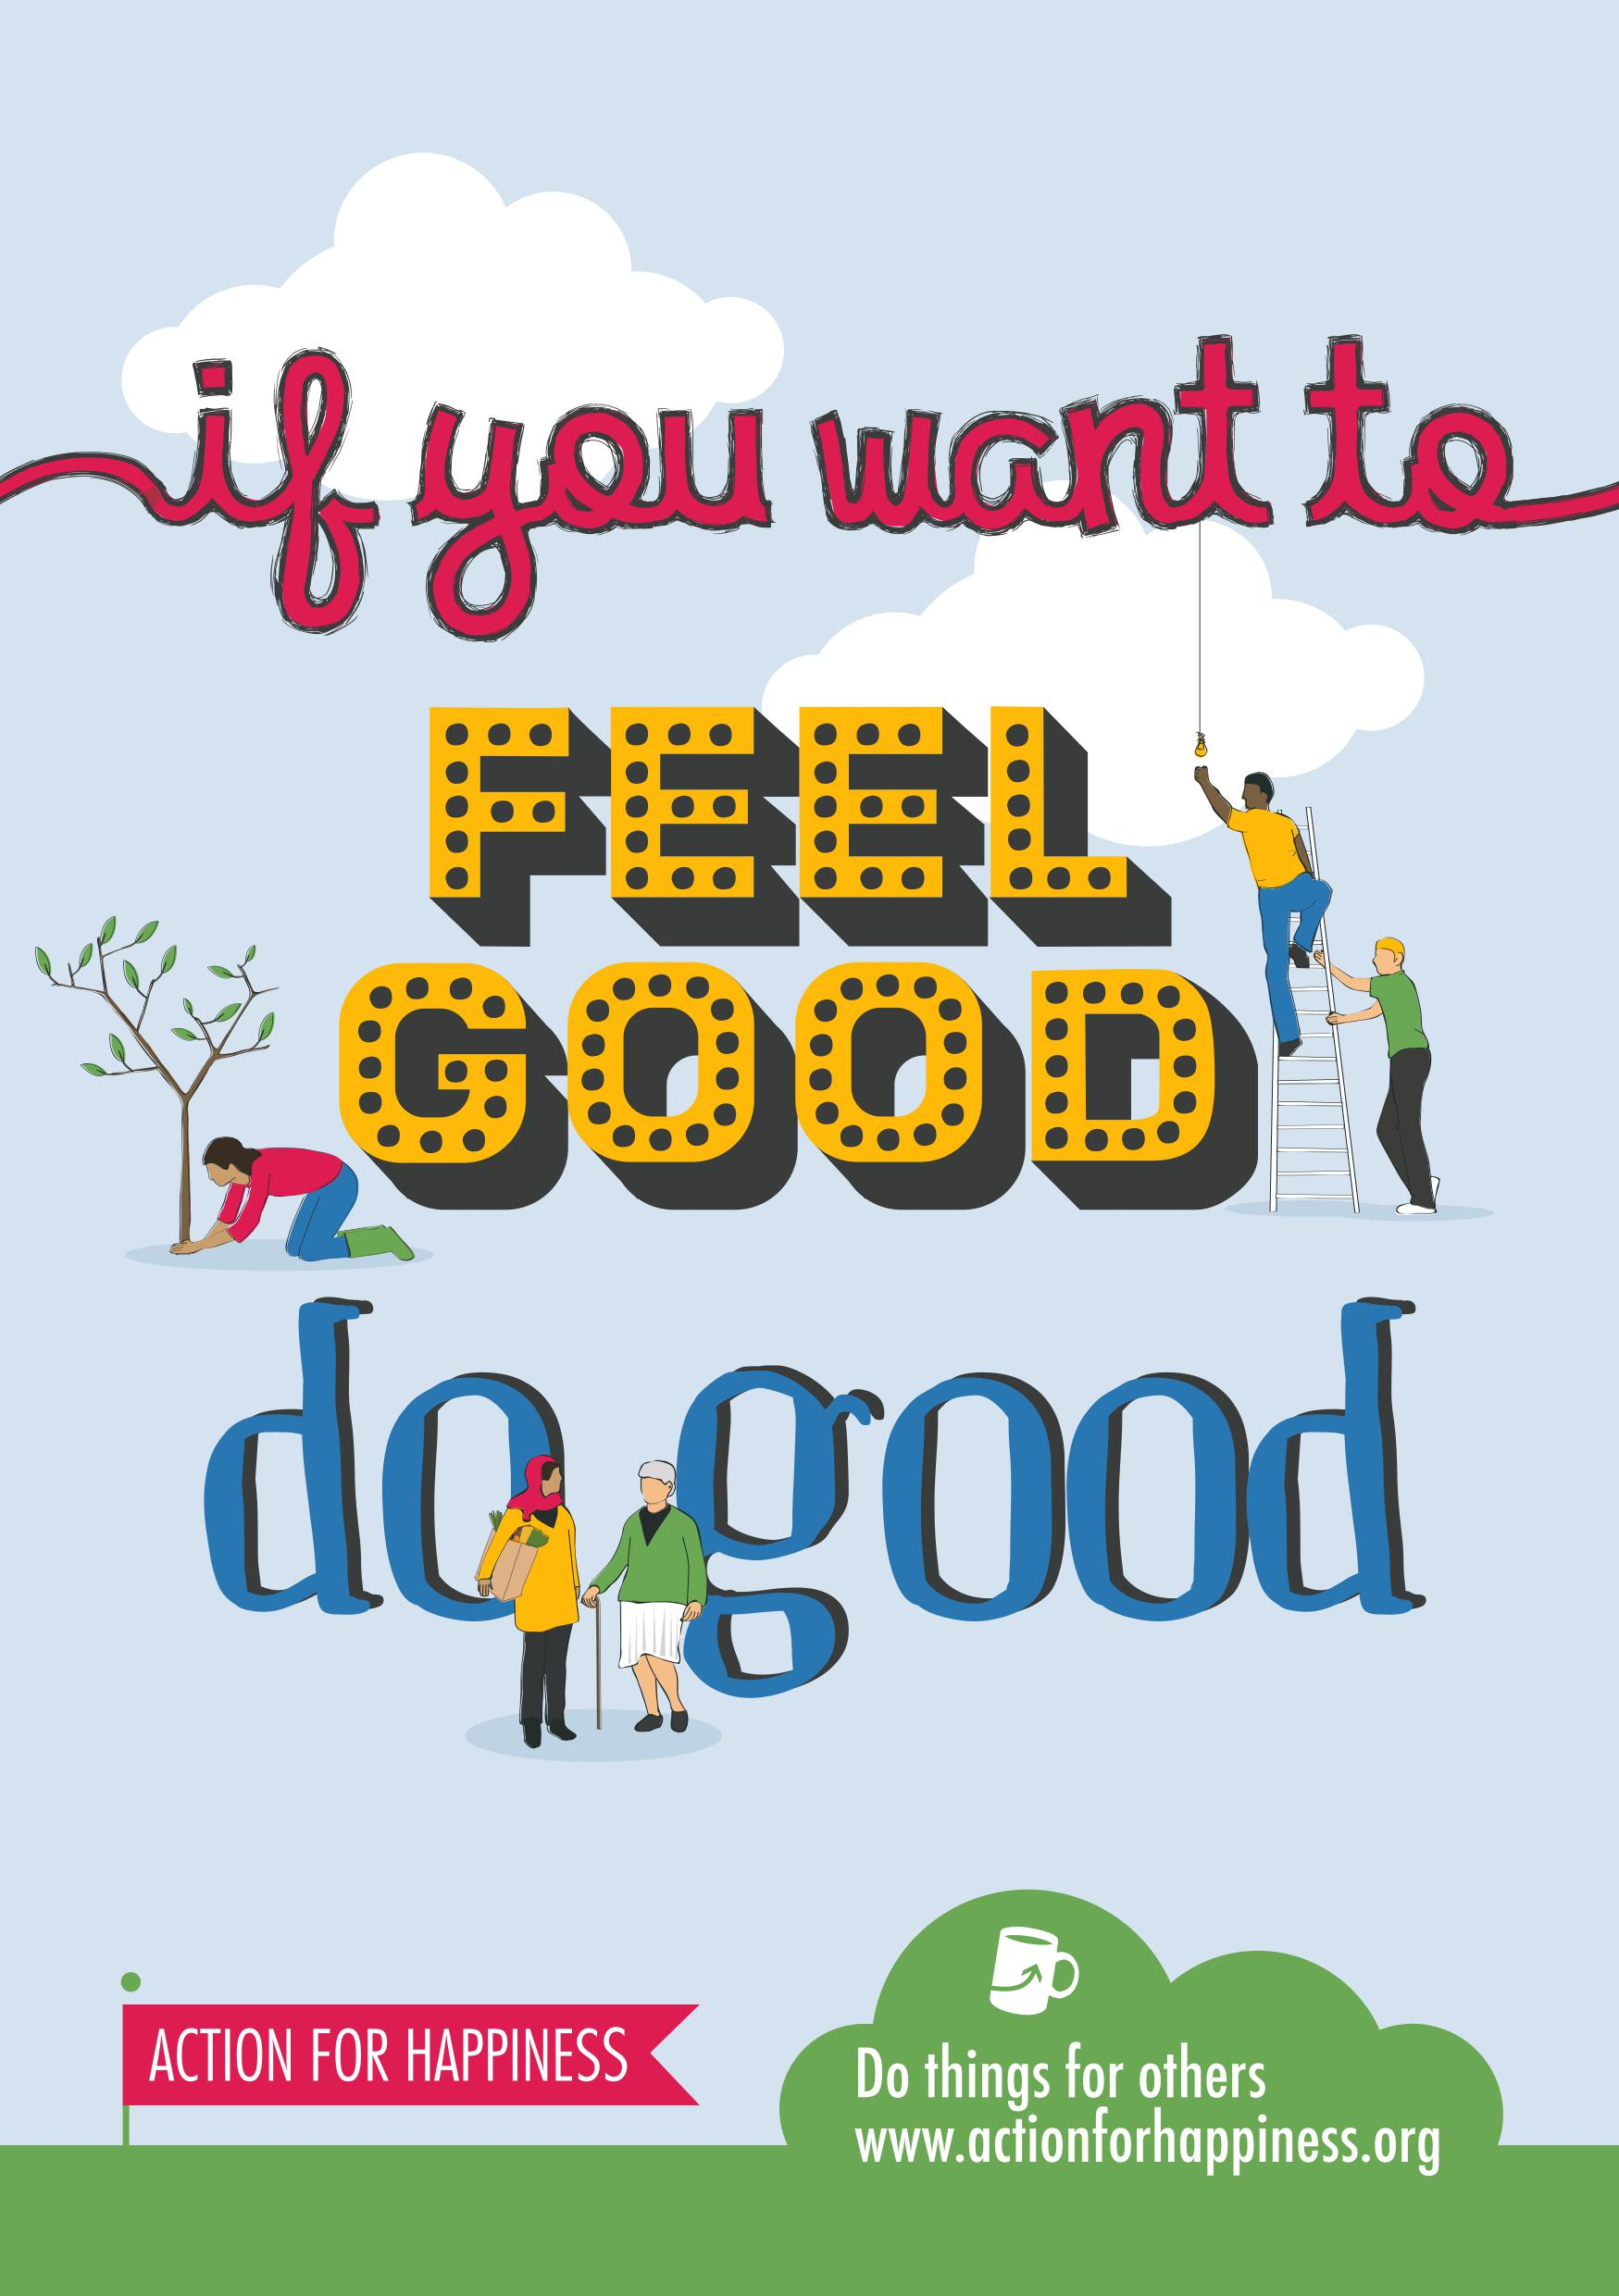 If you want to feel good do good